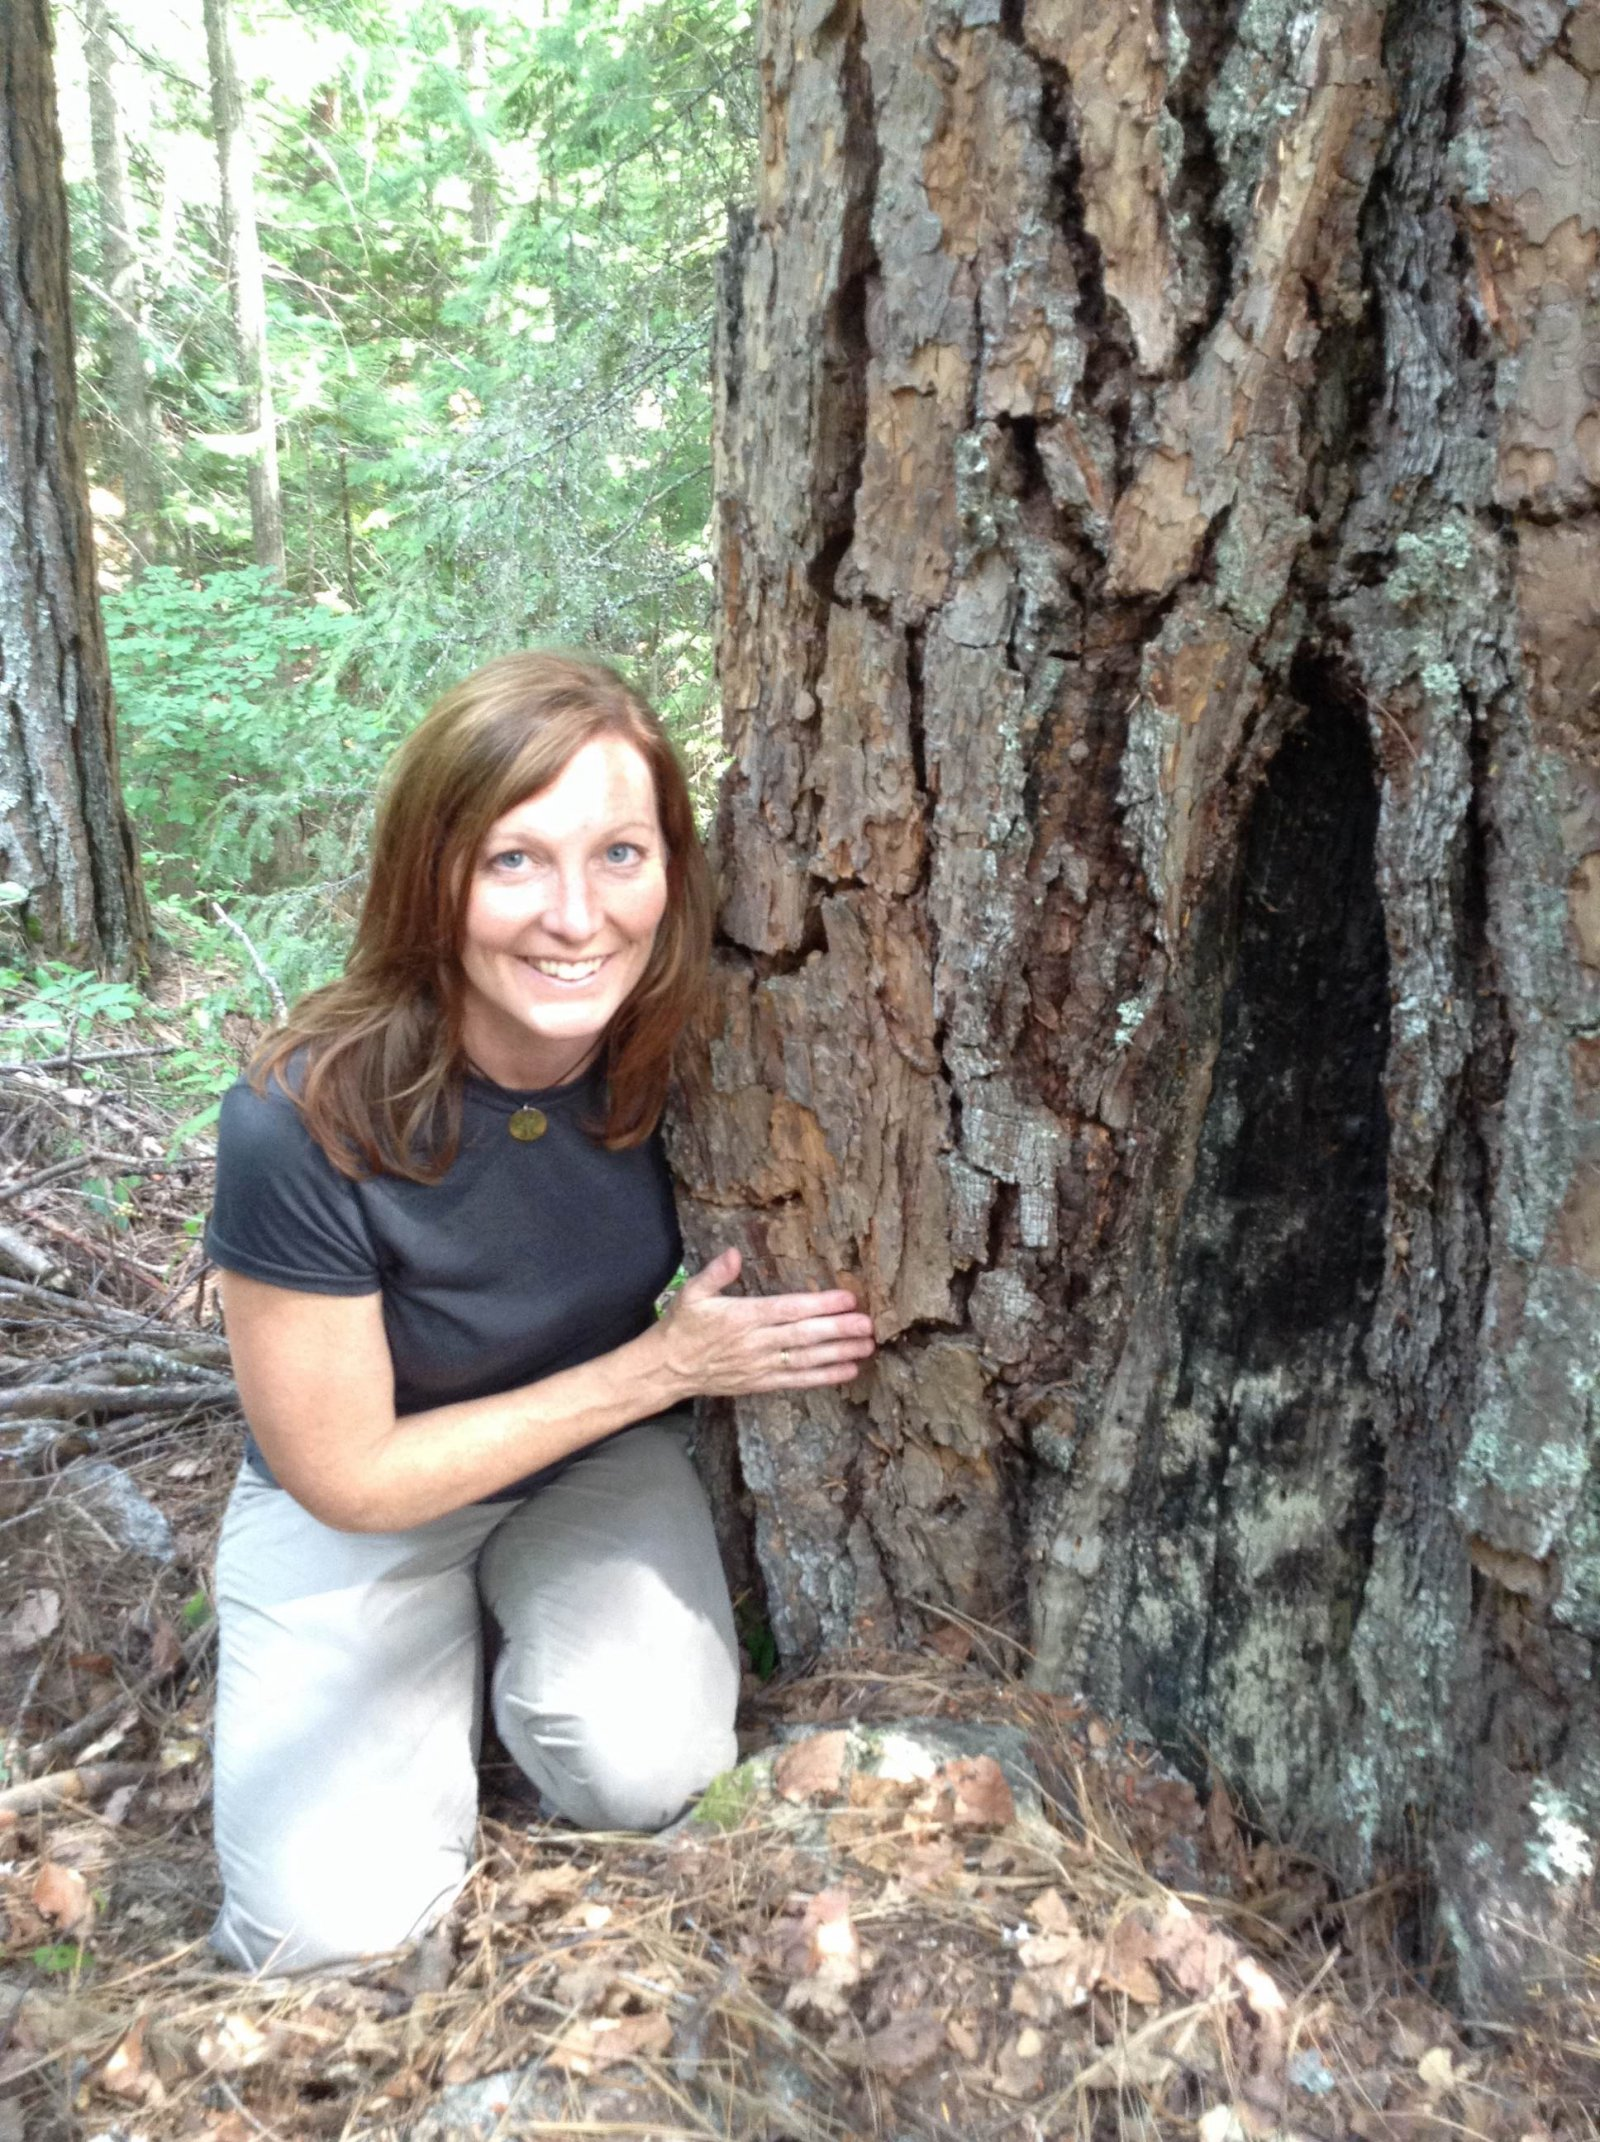 Lori Daniels, a professor of forest ecology at the University of British Columbia, poses beside a fire-scarred pine tree.